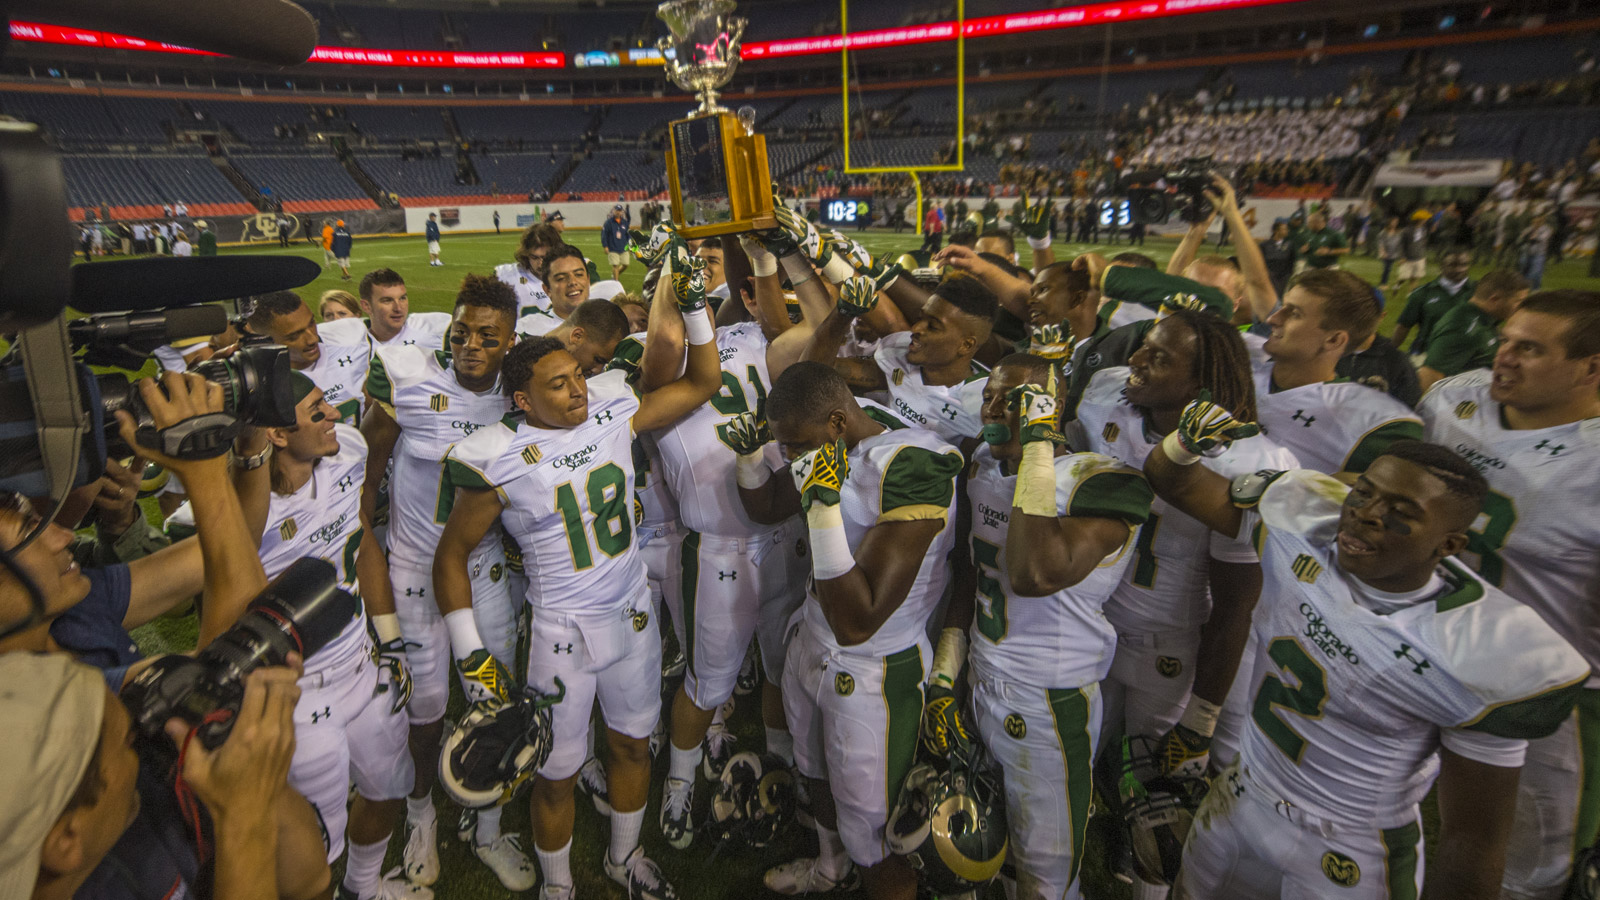 CSU Rams players celebrate with the Centennial Cup after defeating the the CU Buffaloes 31-17 in the Rocky Mountain Showdown at Sports Authority Field at Mile High on Aug. 29, 2014. (credit: Evan Semón/CBS4)